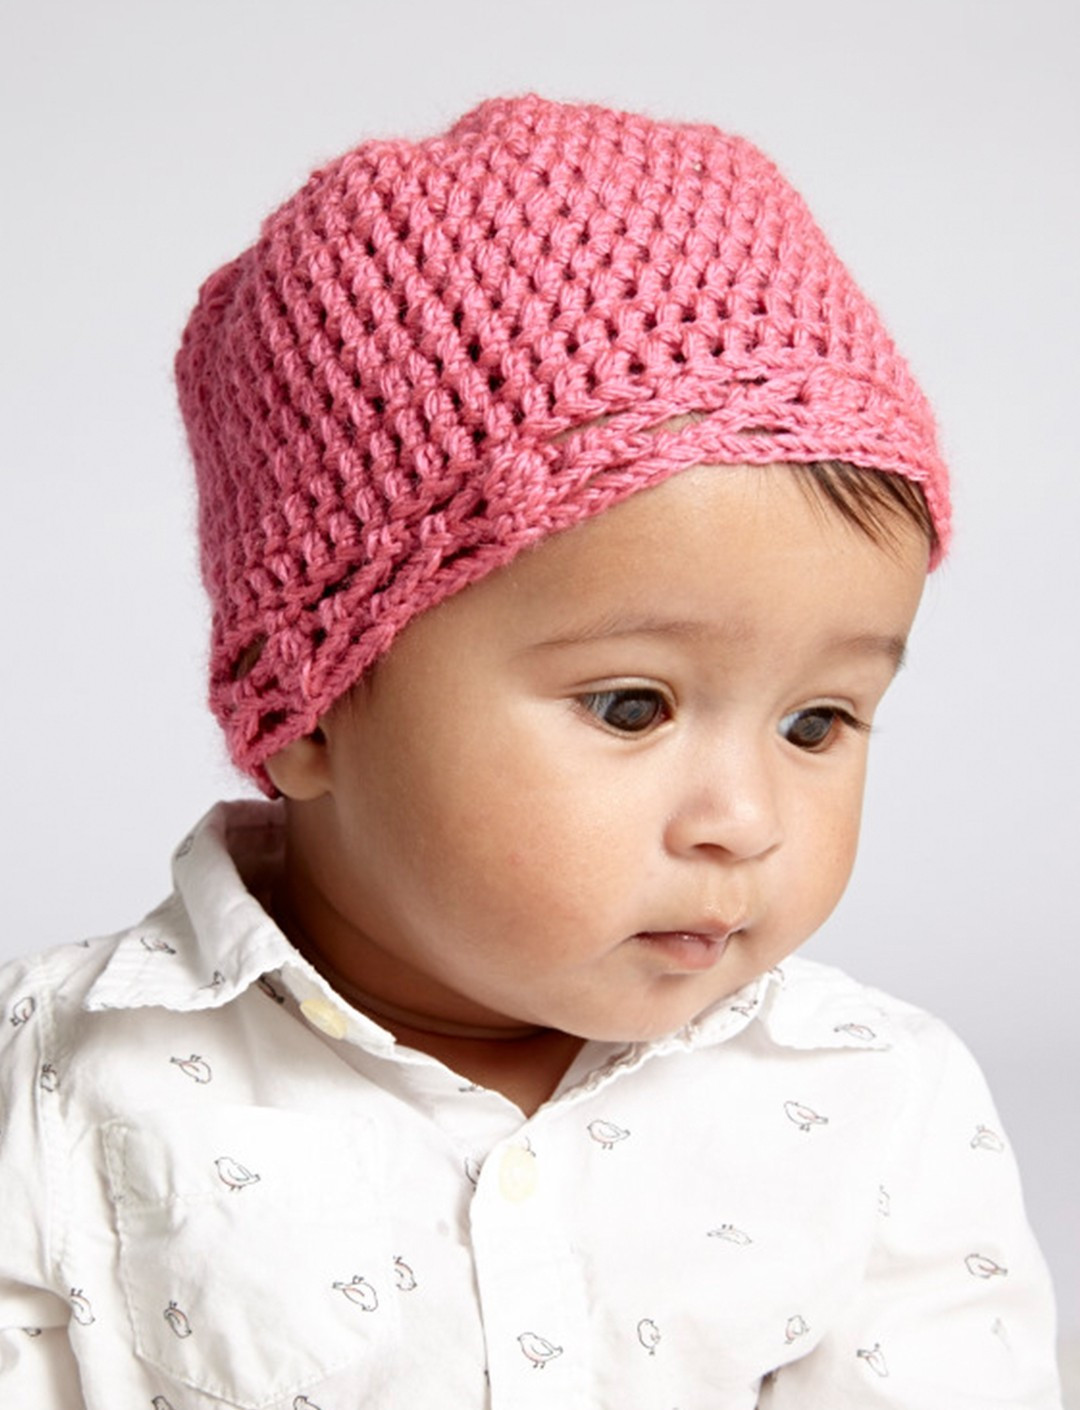 Newborn Crochet Patterns Beautiful Bernat Crochet Baby Hat Crochet Pattern Of Incredible 41 Ideas Newborn Crochet Patterns